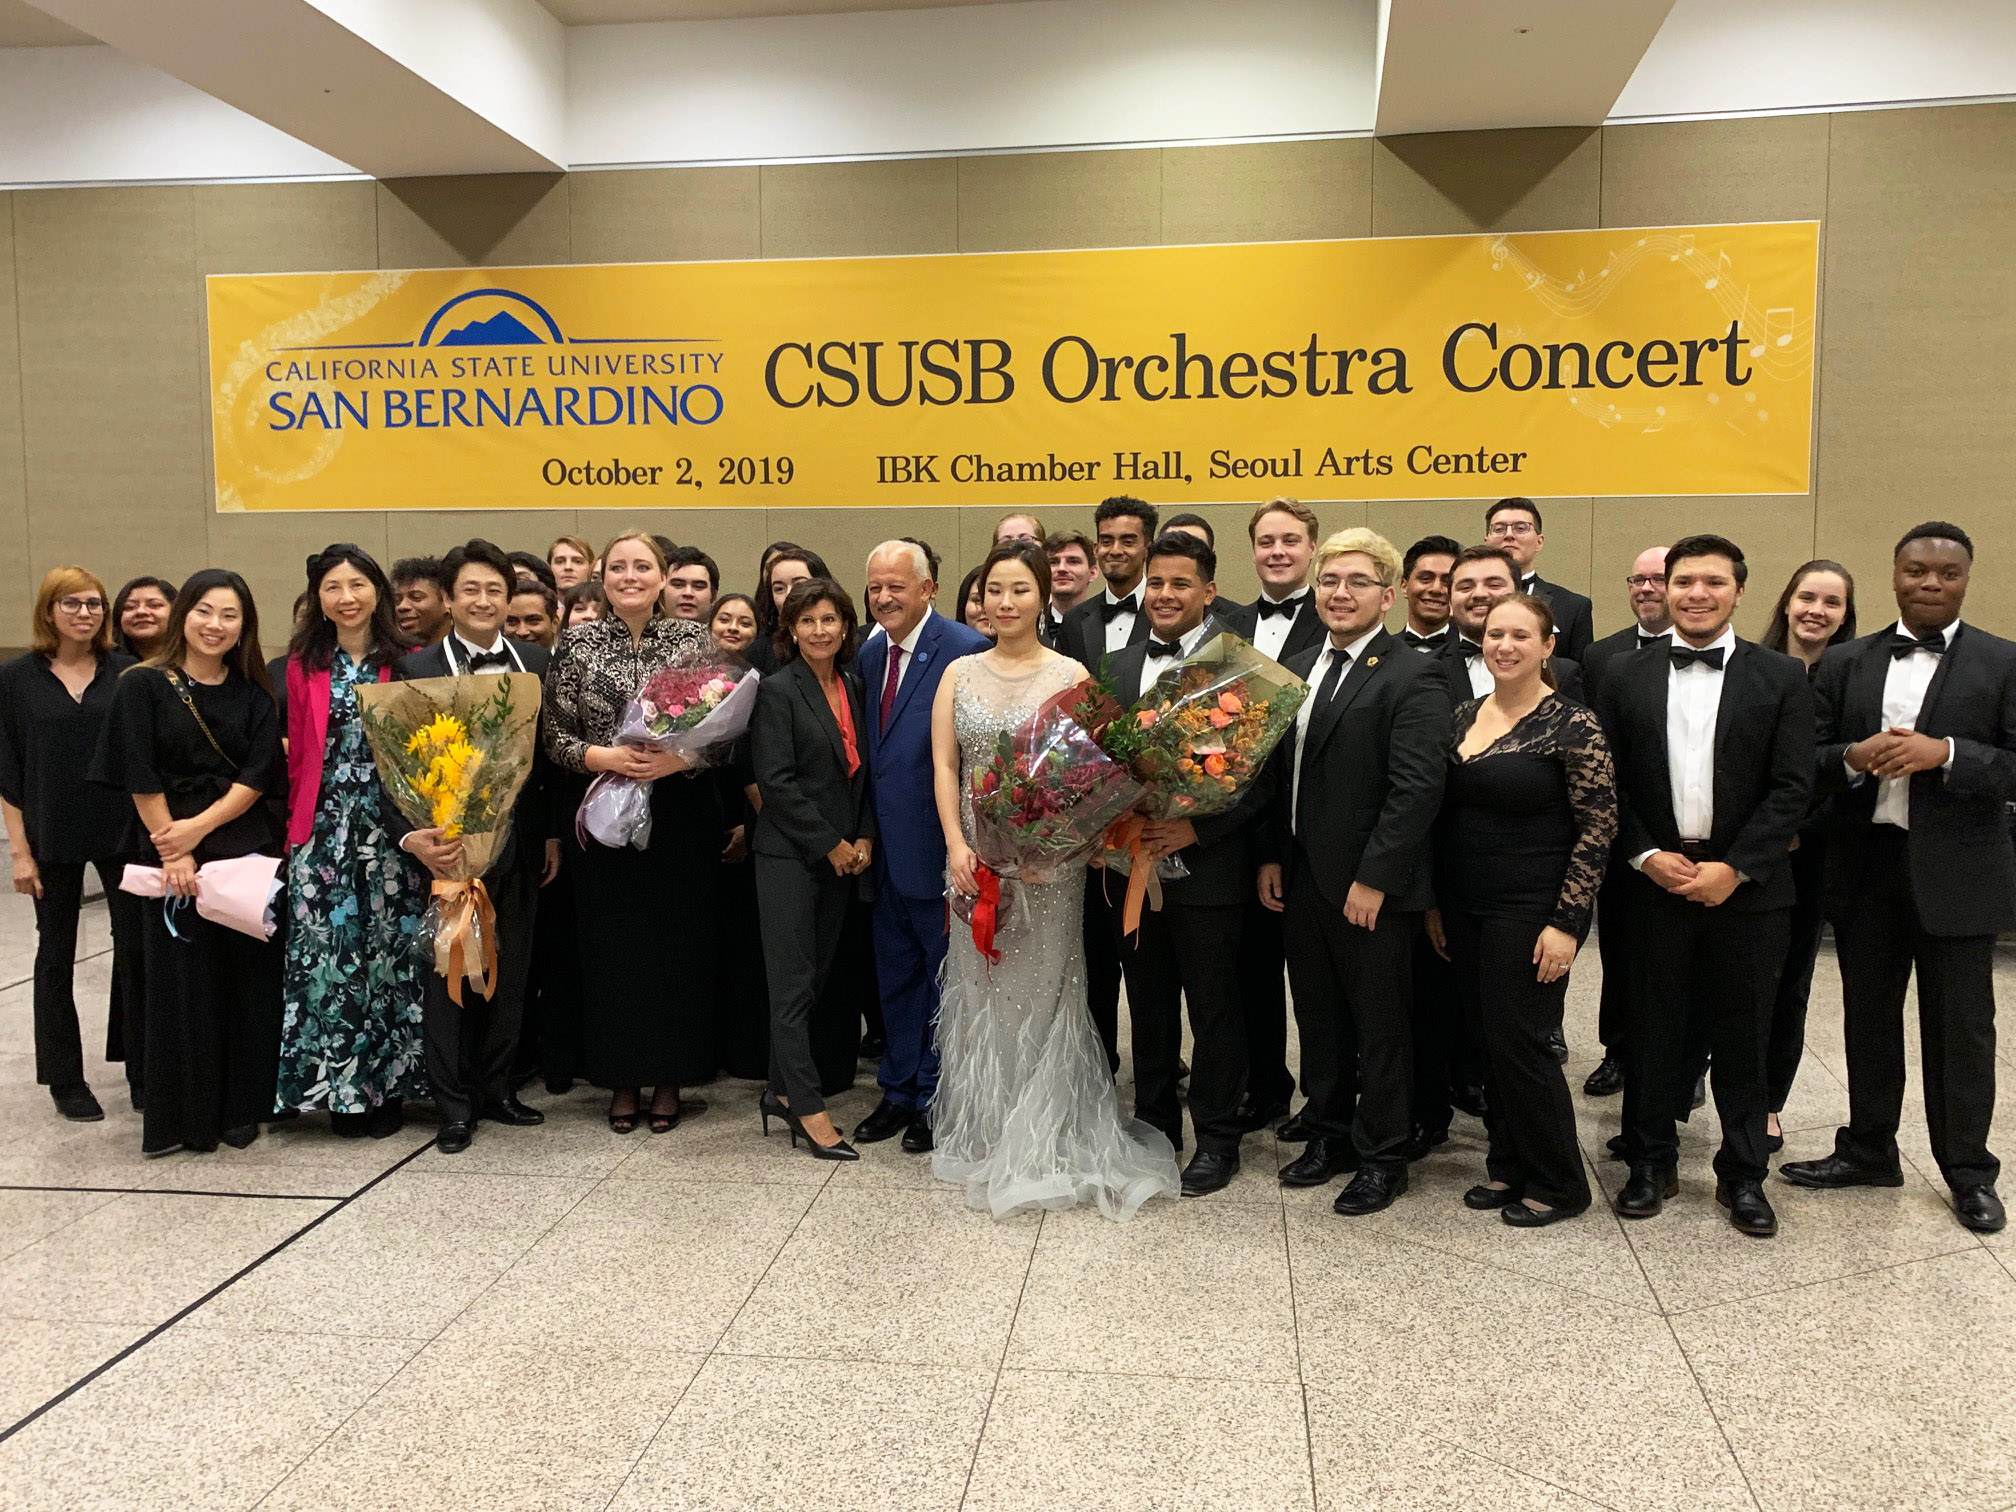 The CSUSB Orchestra Concert was made possible through an endowment and a grant worth $498,000 created by the Korea Foundation